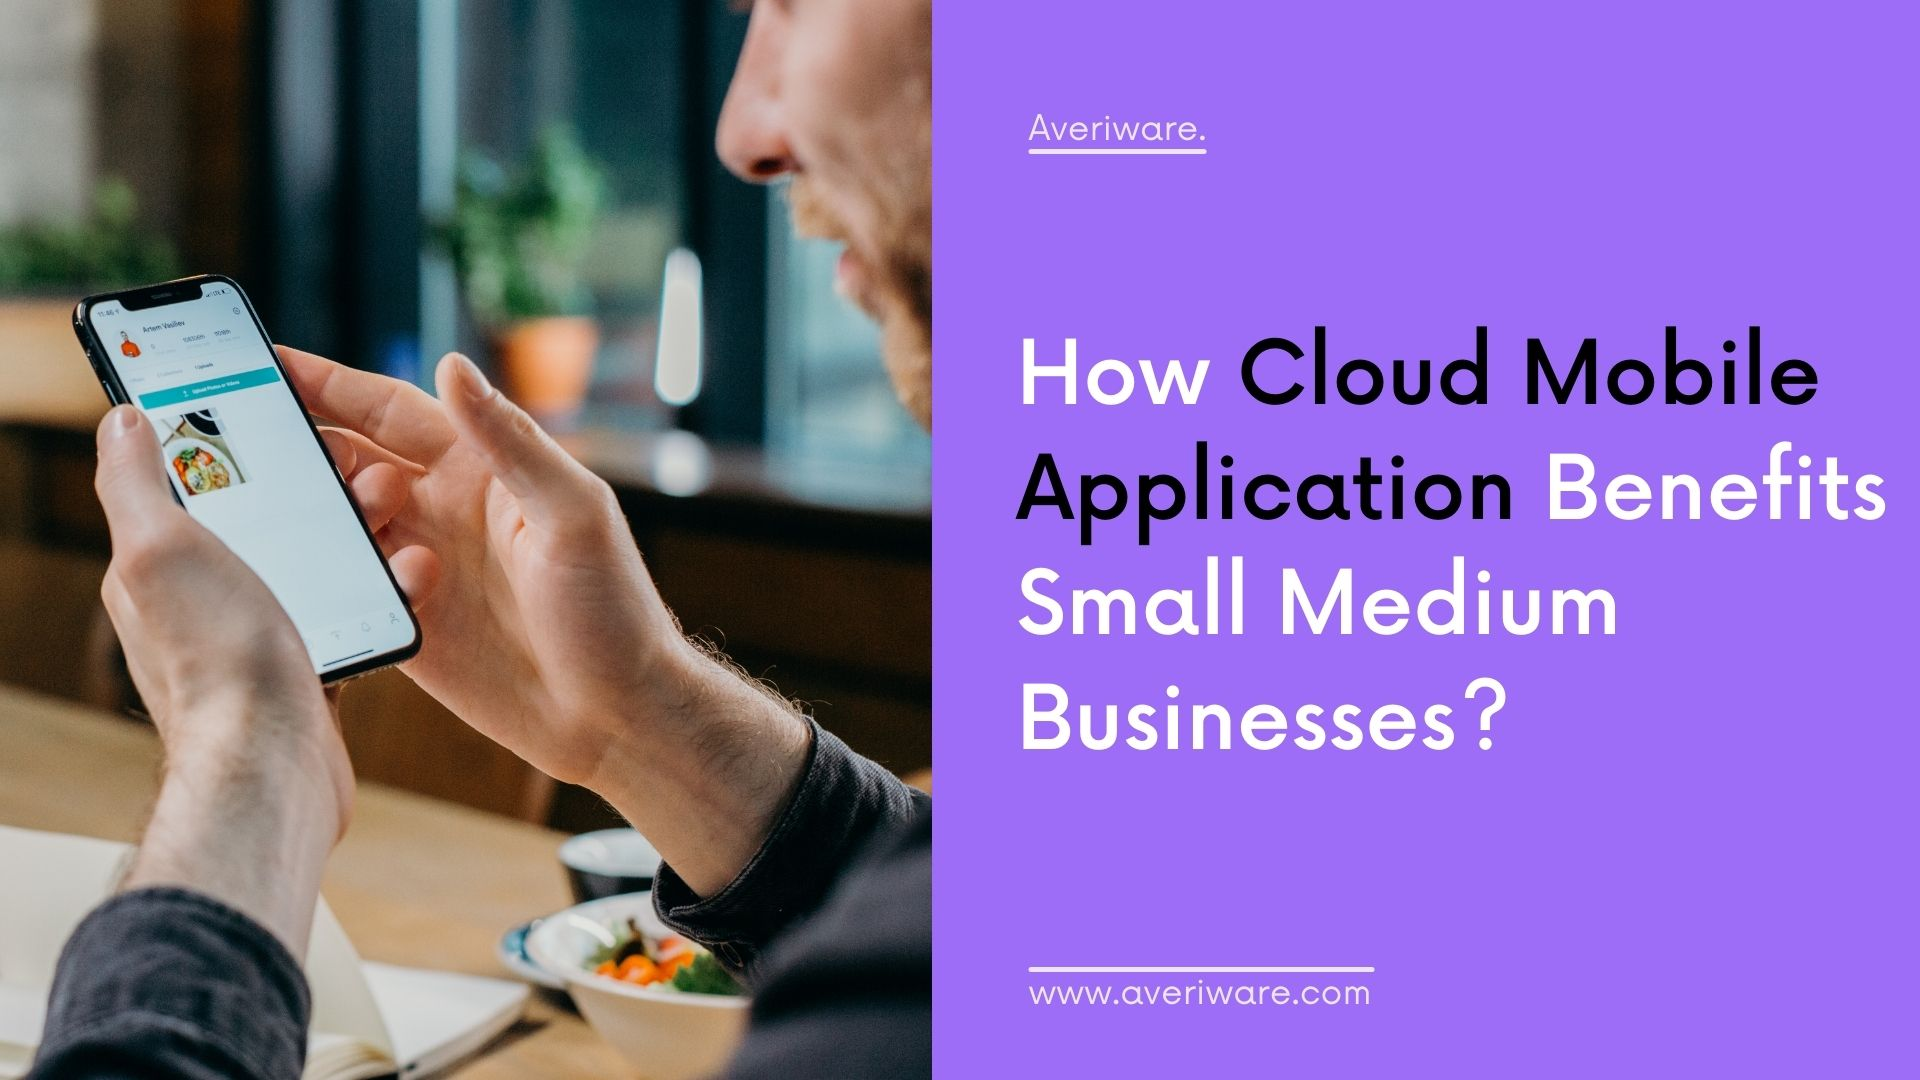 How-Cloud-Mobile-Application-Benefits-Small-Medium-Businesses